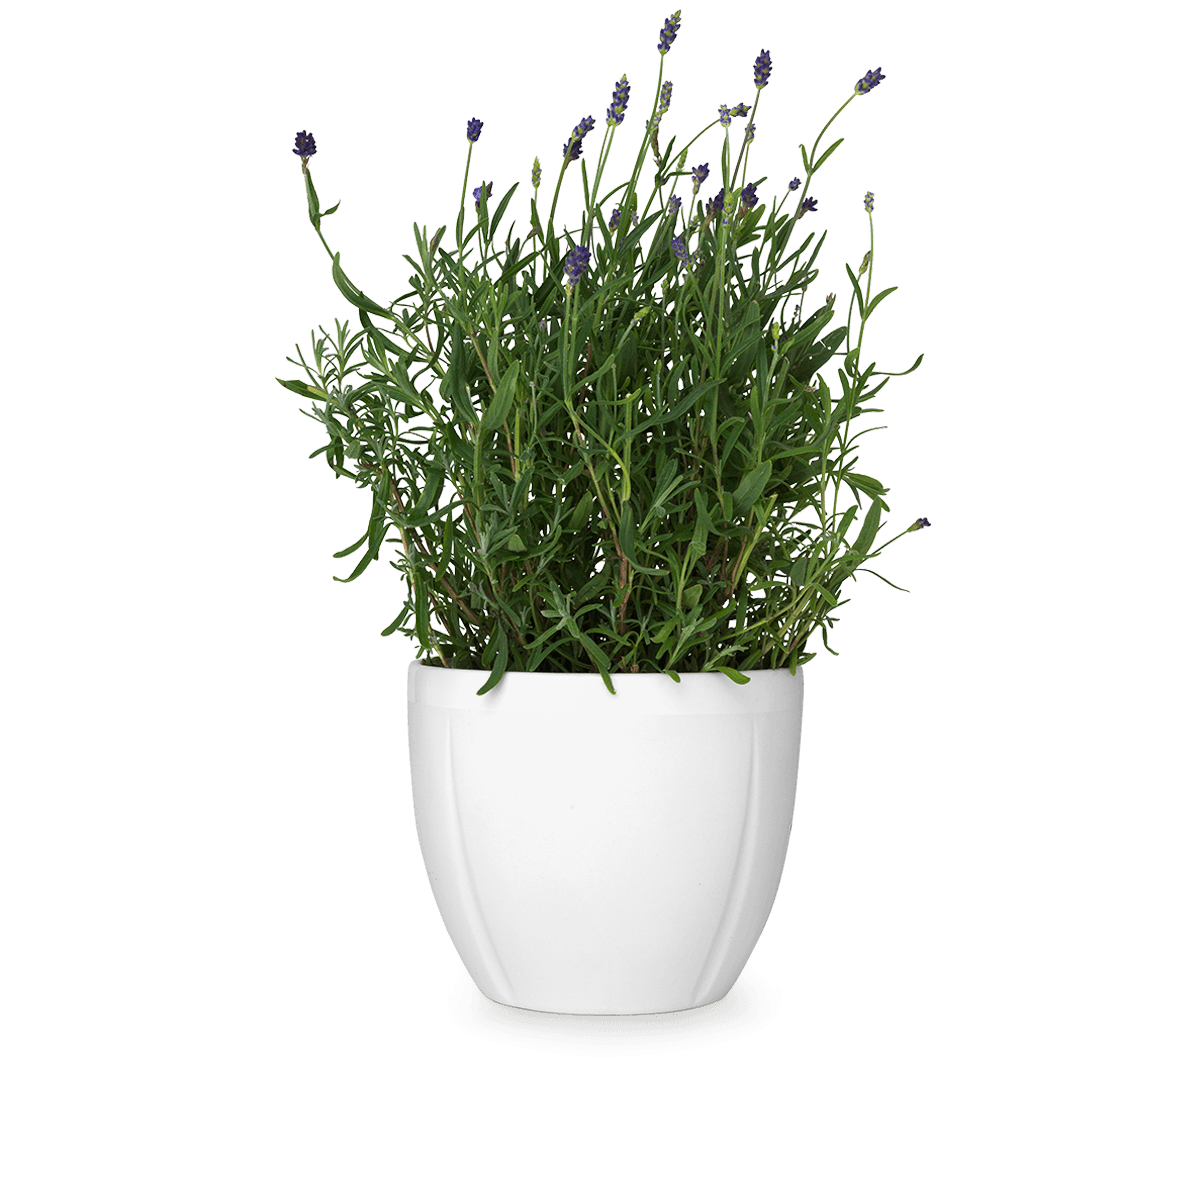 Potted plants png. Flower pot transparent images